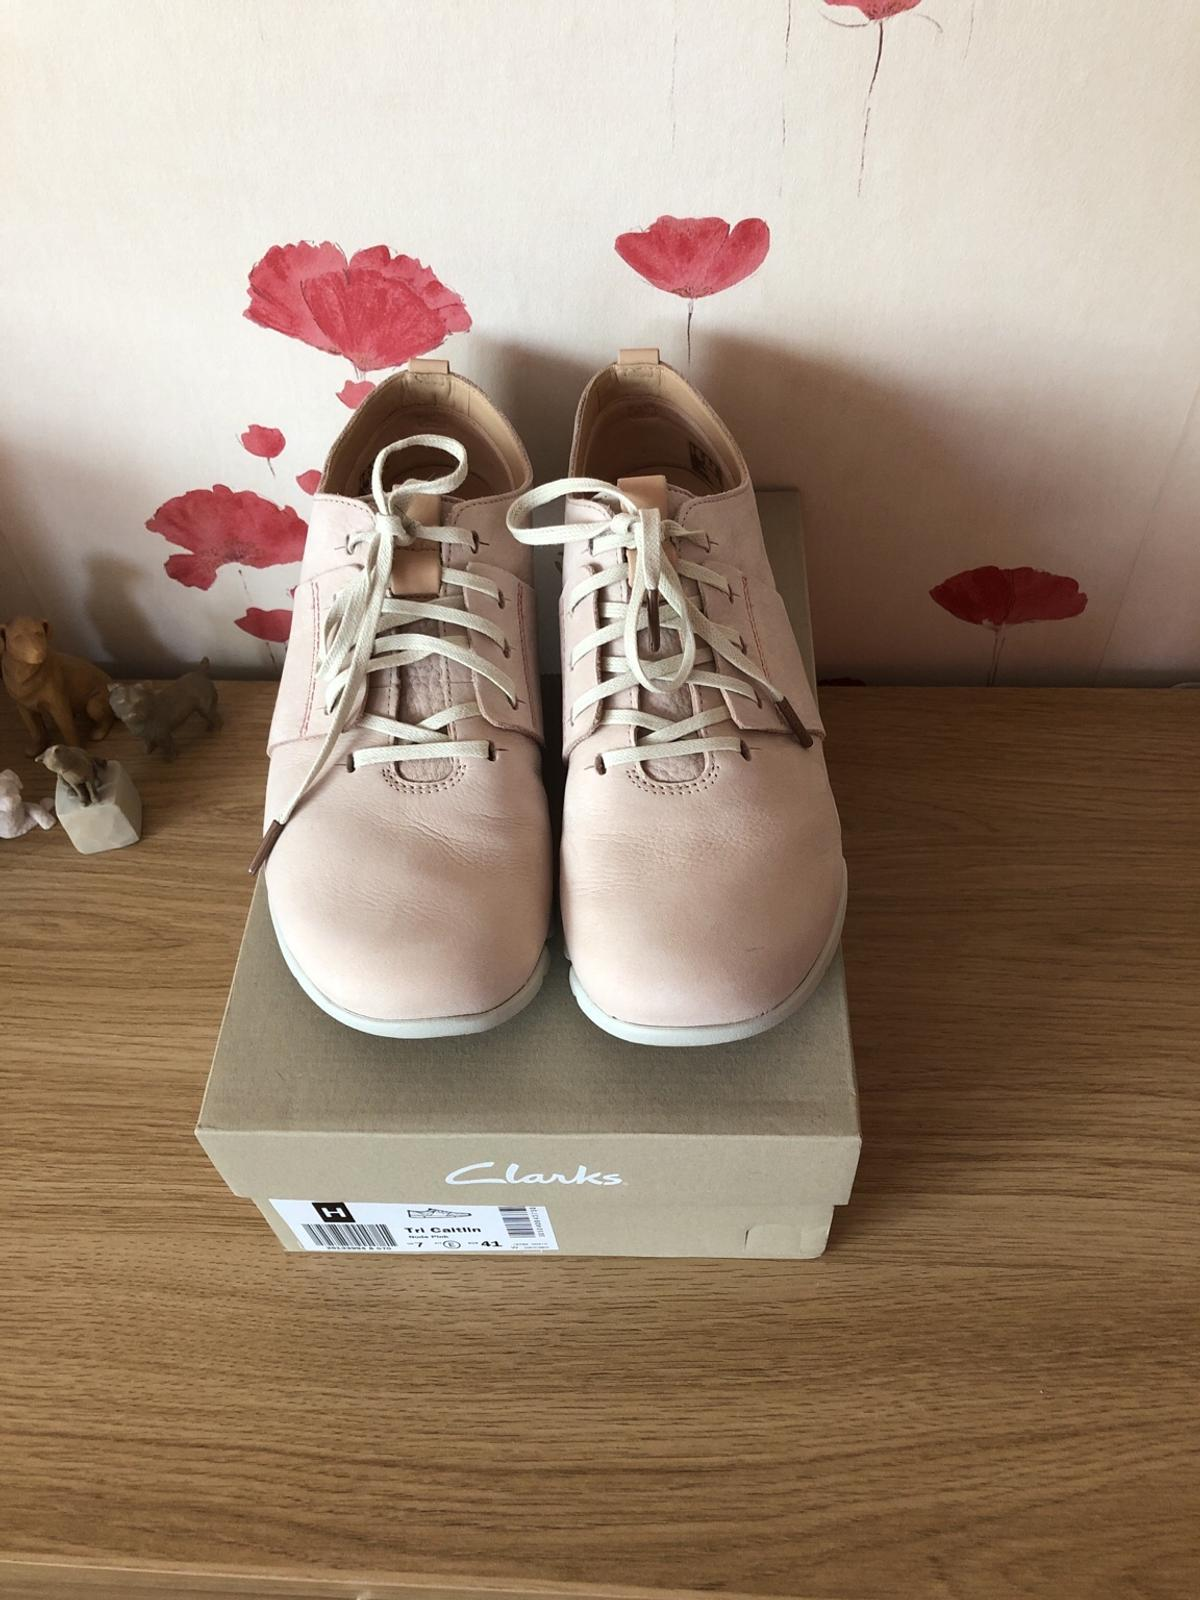 begrenzte garantie Angebot outlet Clarks Tri Caitlin nude pink leather in SE28 Greenwich for ...